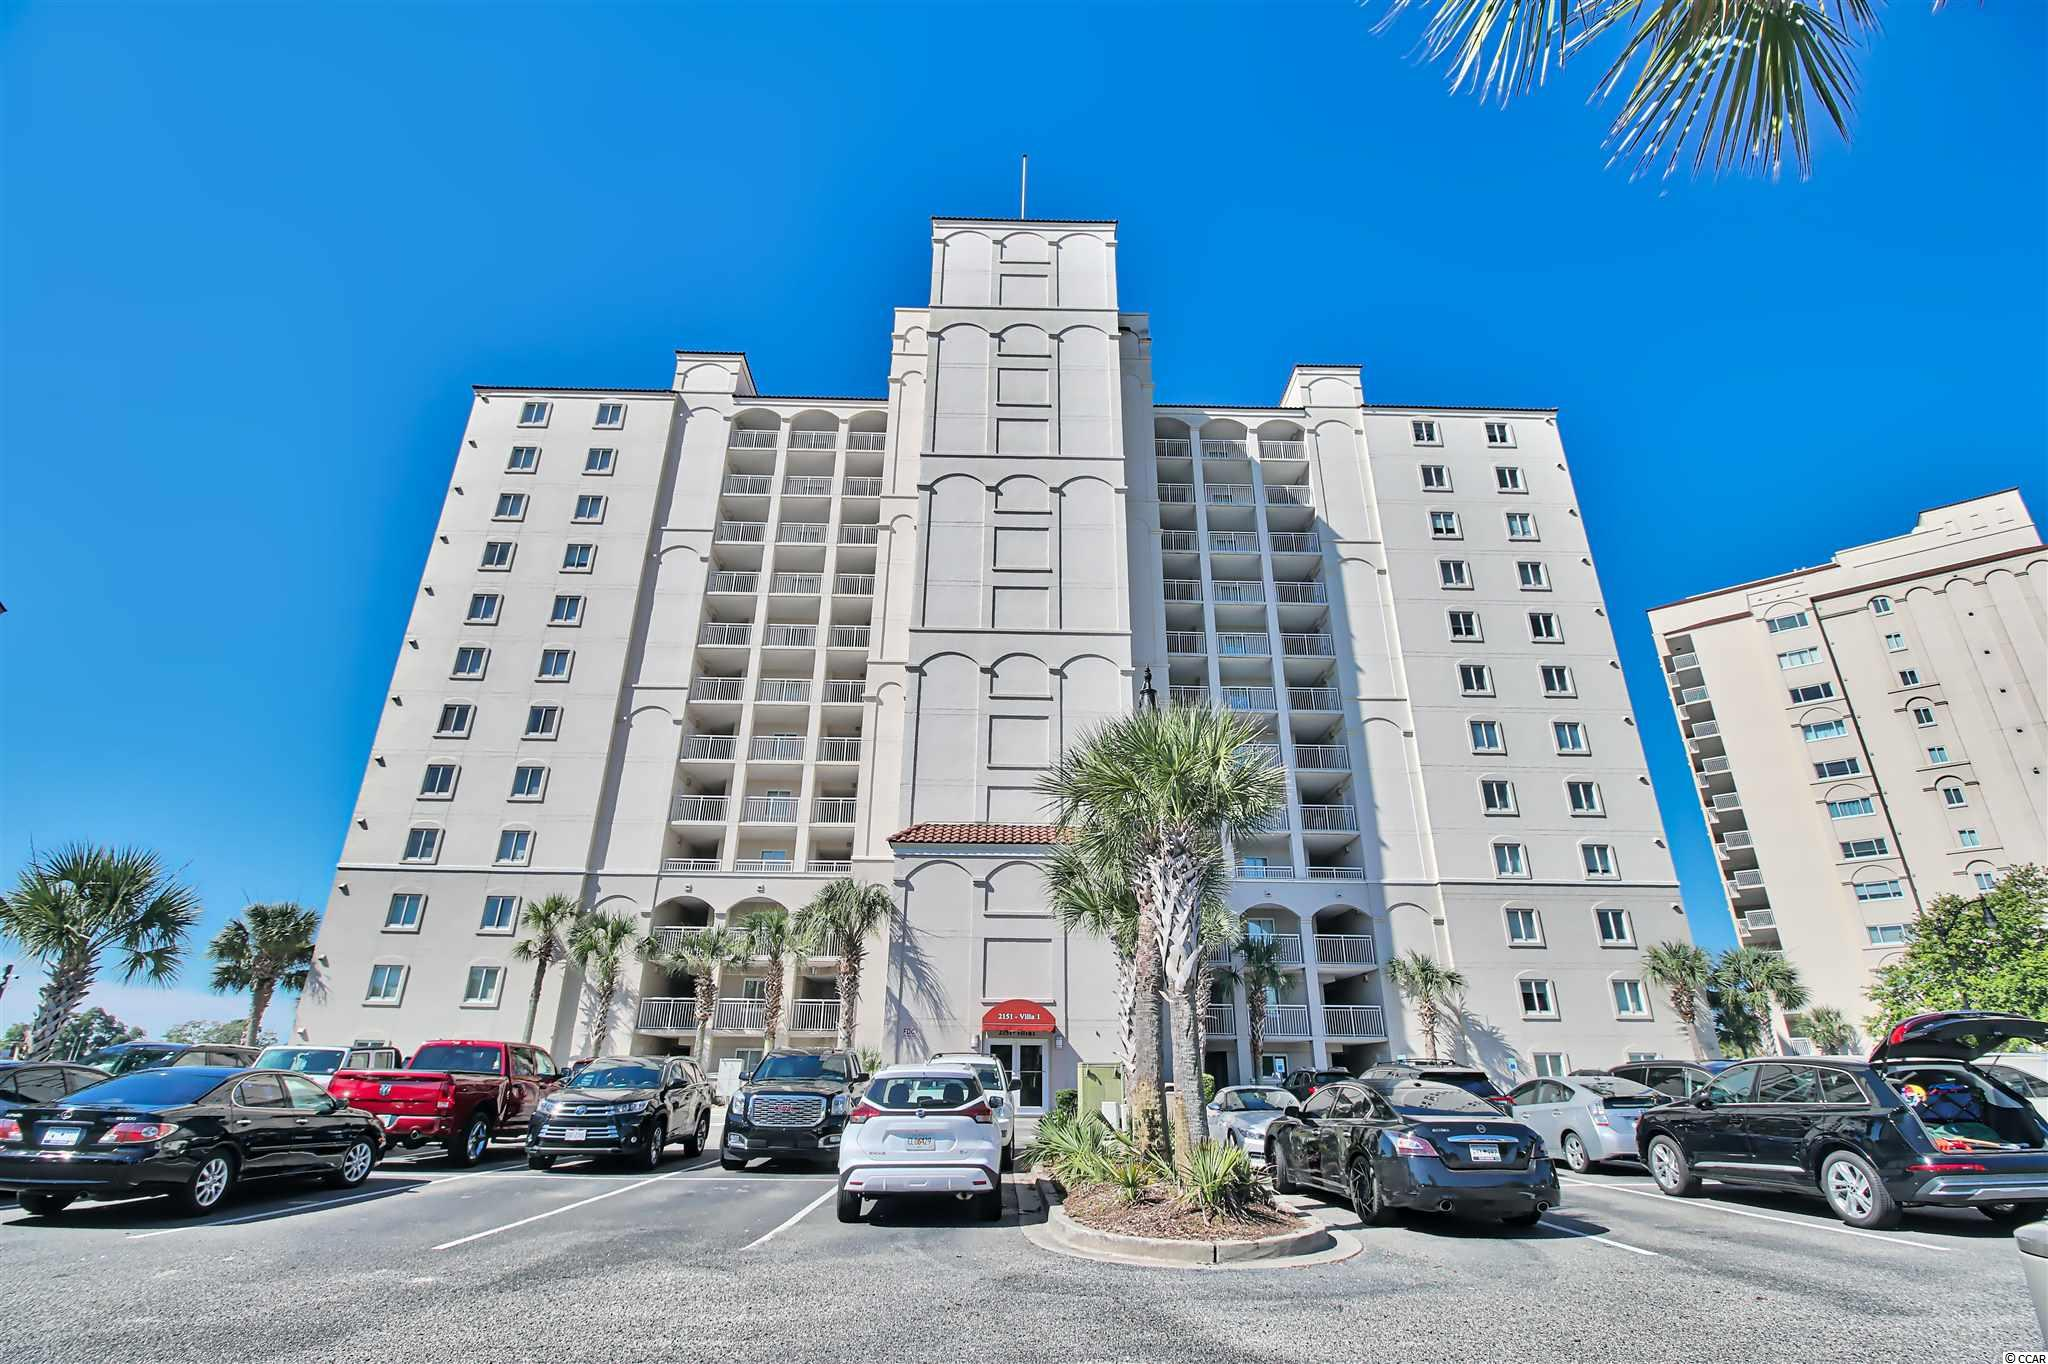 You'll think you're looking at a professionally decorated model. This condo is in excellent condition. The stainless steel appliances are almost new. Selling furnished. The current owners use this as their 2nd home. They have never rented it. This 1st floor, corner condo has a great view of the Intracoastal Waterway, the boat marina and Barefoot Landing. During the summer you have a ring side seat of the Monday night fireworks. And it's just a very short walk to the large community pool. The unique floor plan is set for rentals giving you 3 units all with separate entrance doors or a combination of one or two bedroom units. If you're looking for a large, upscale condo you have to check this one out. Check it quick. It will not last long. Square footage is approximate and not guaranteed. Buyer is responsible for verification.